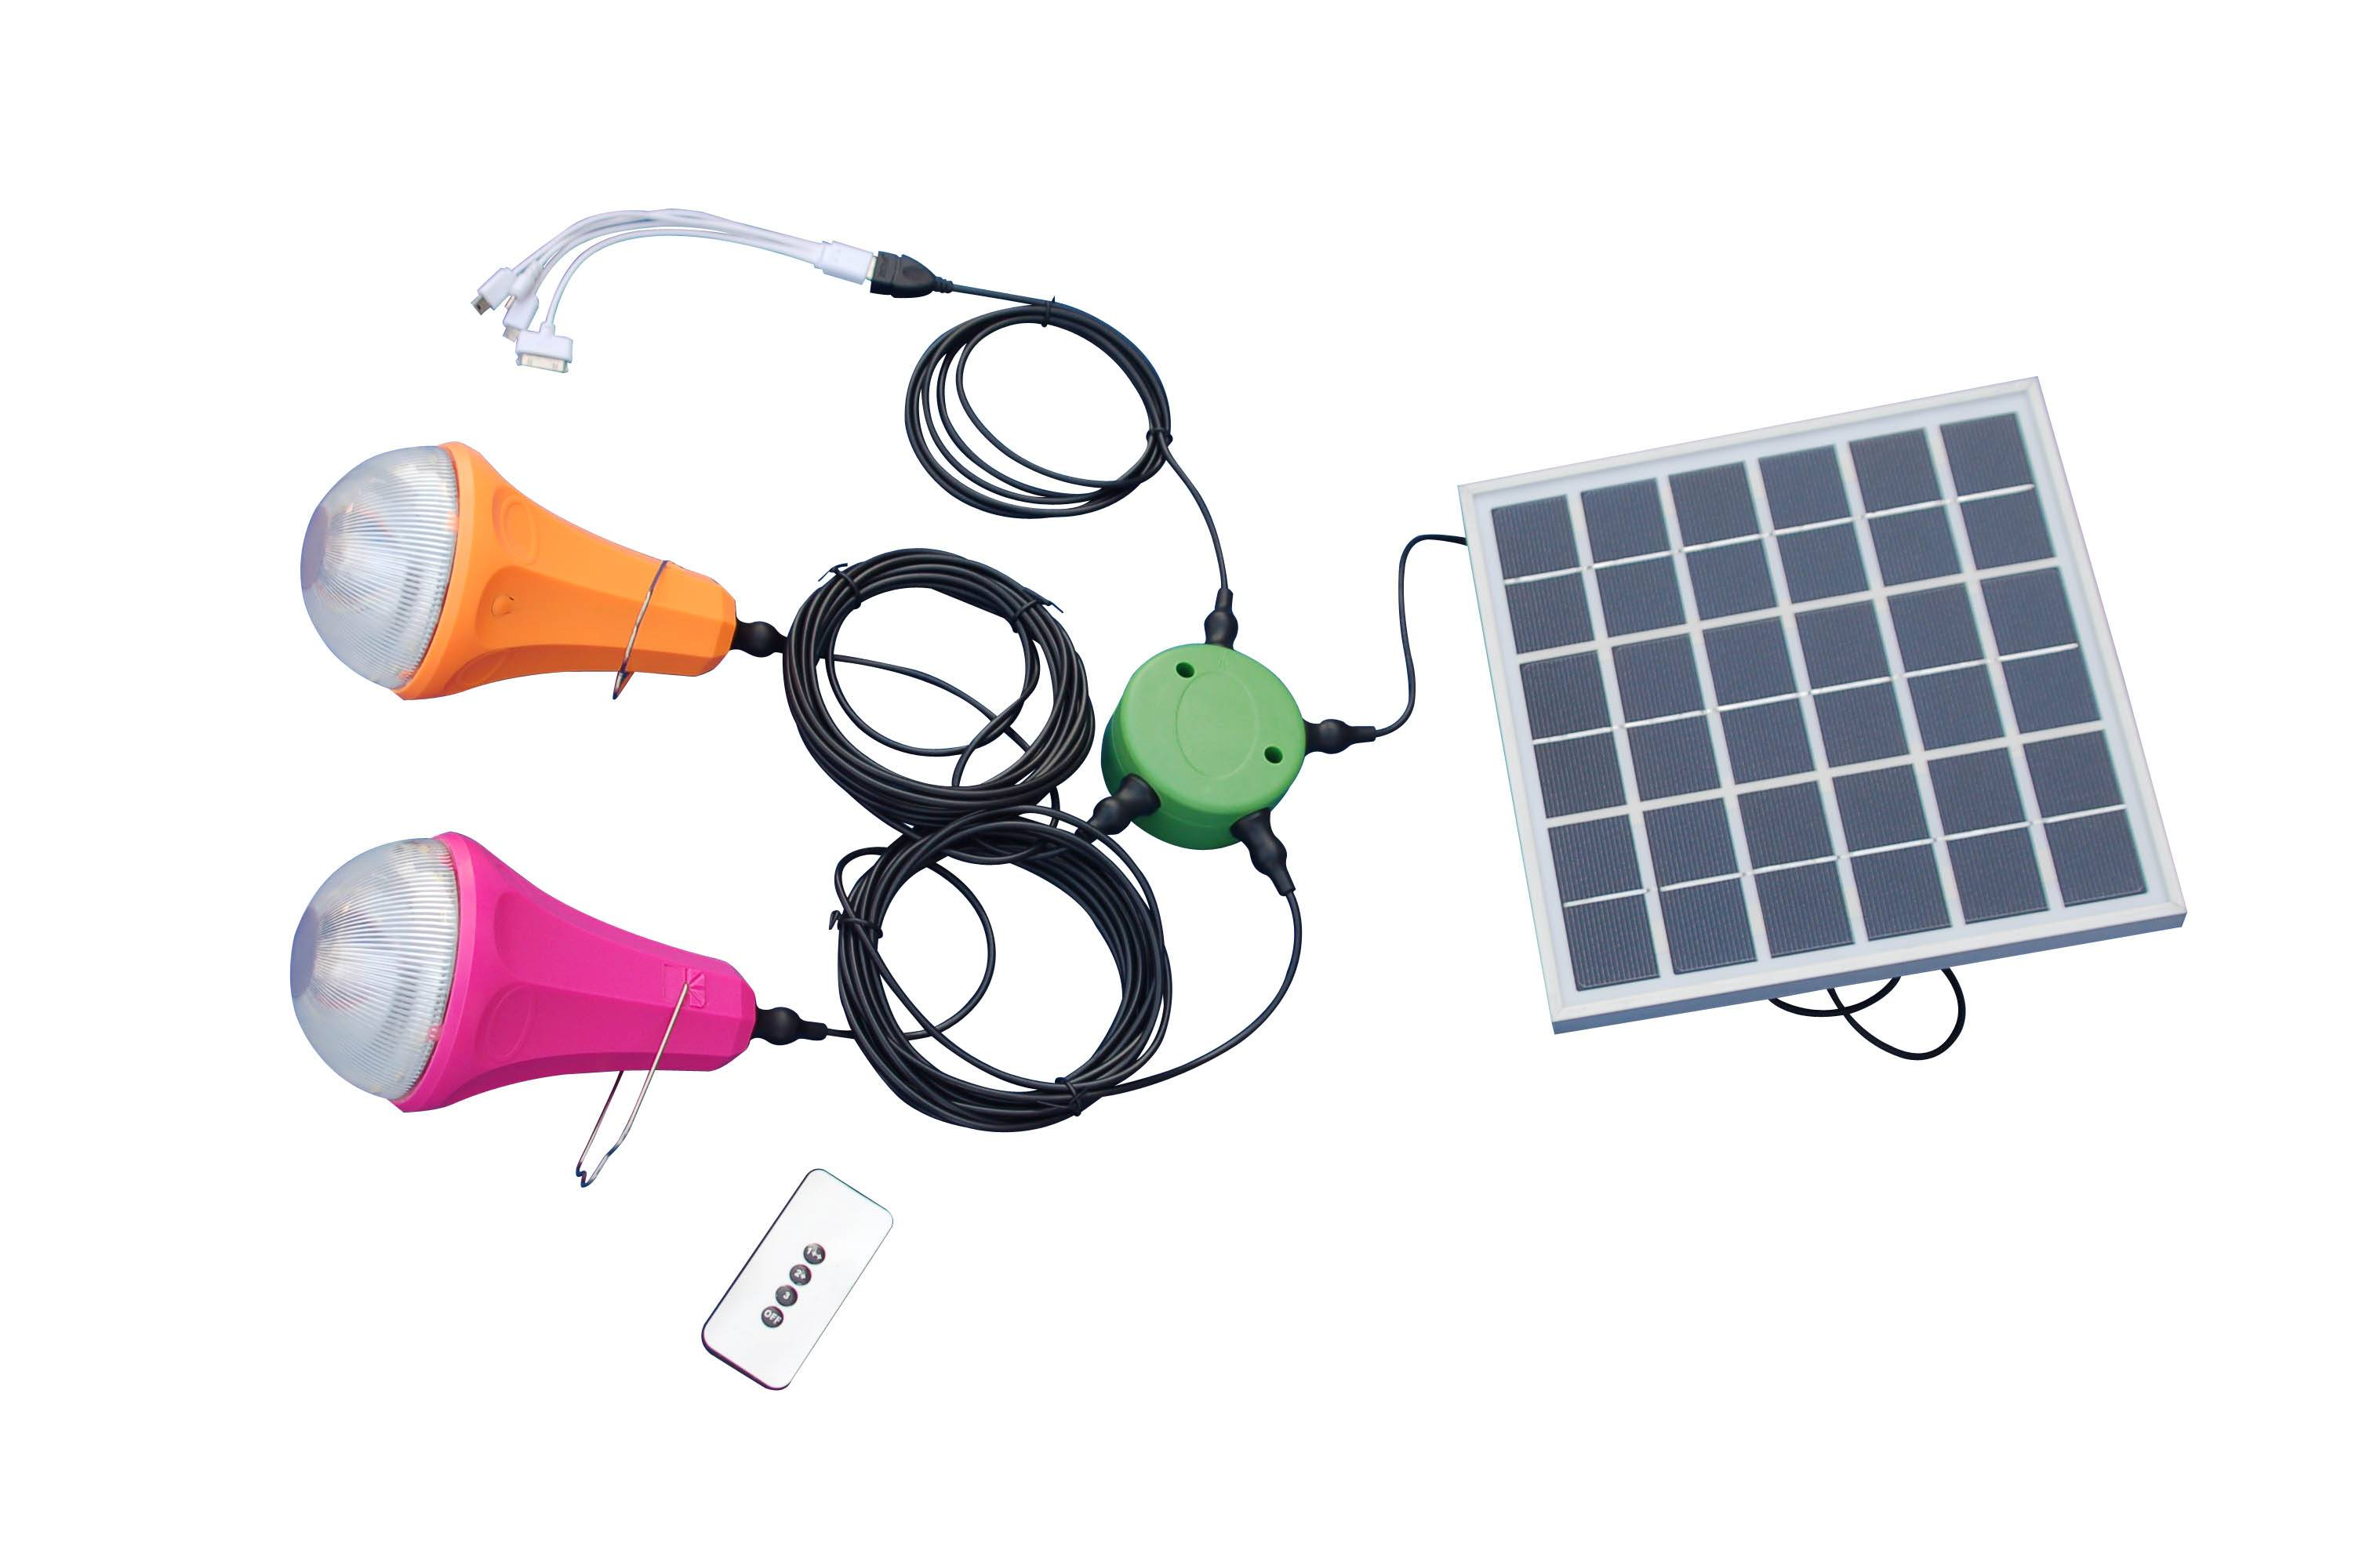 Portable solar home LED light with phone charger, solar lamp for home use